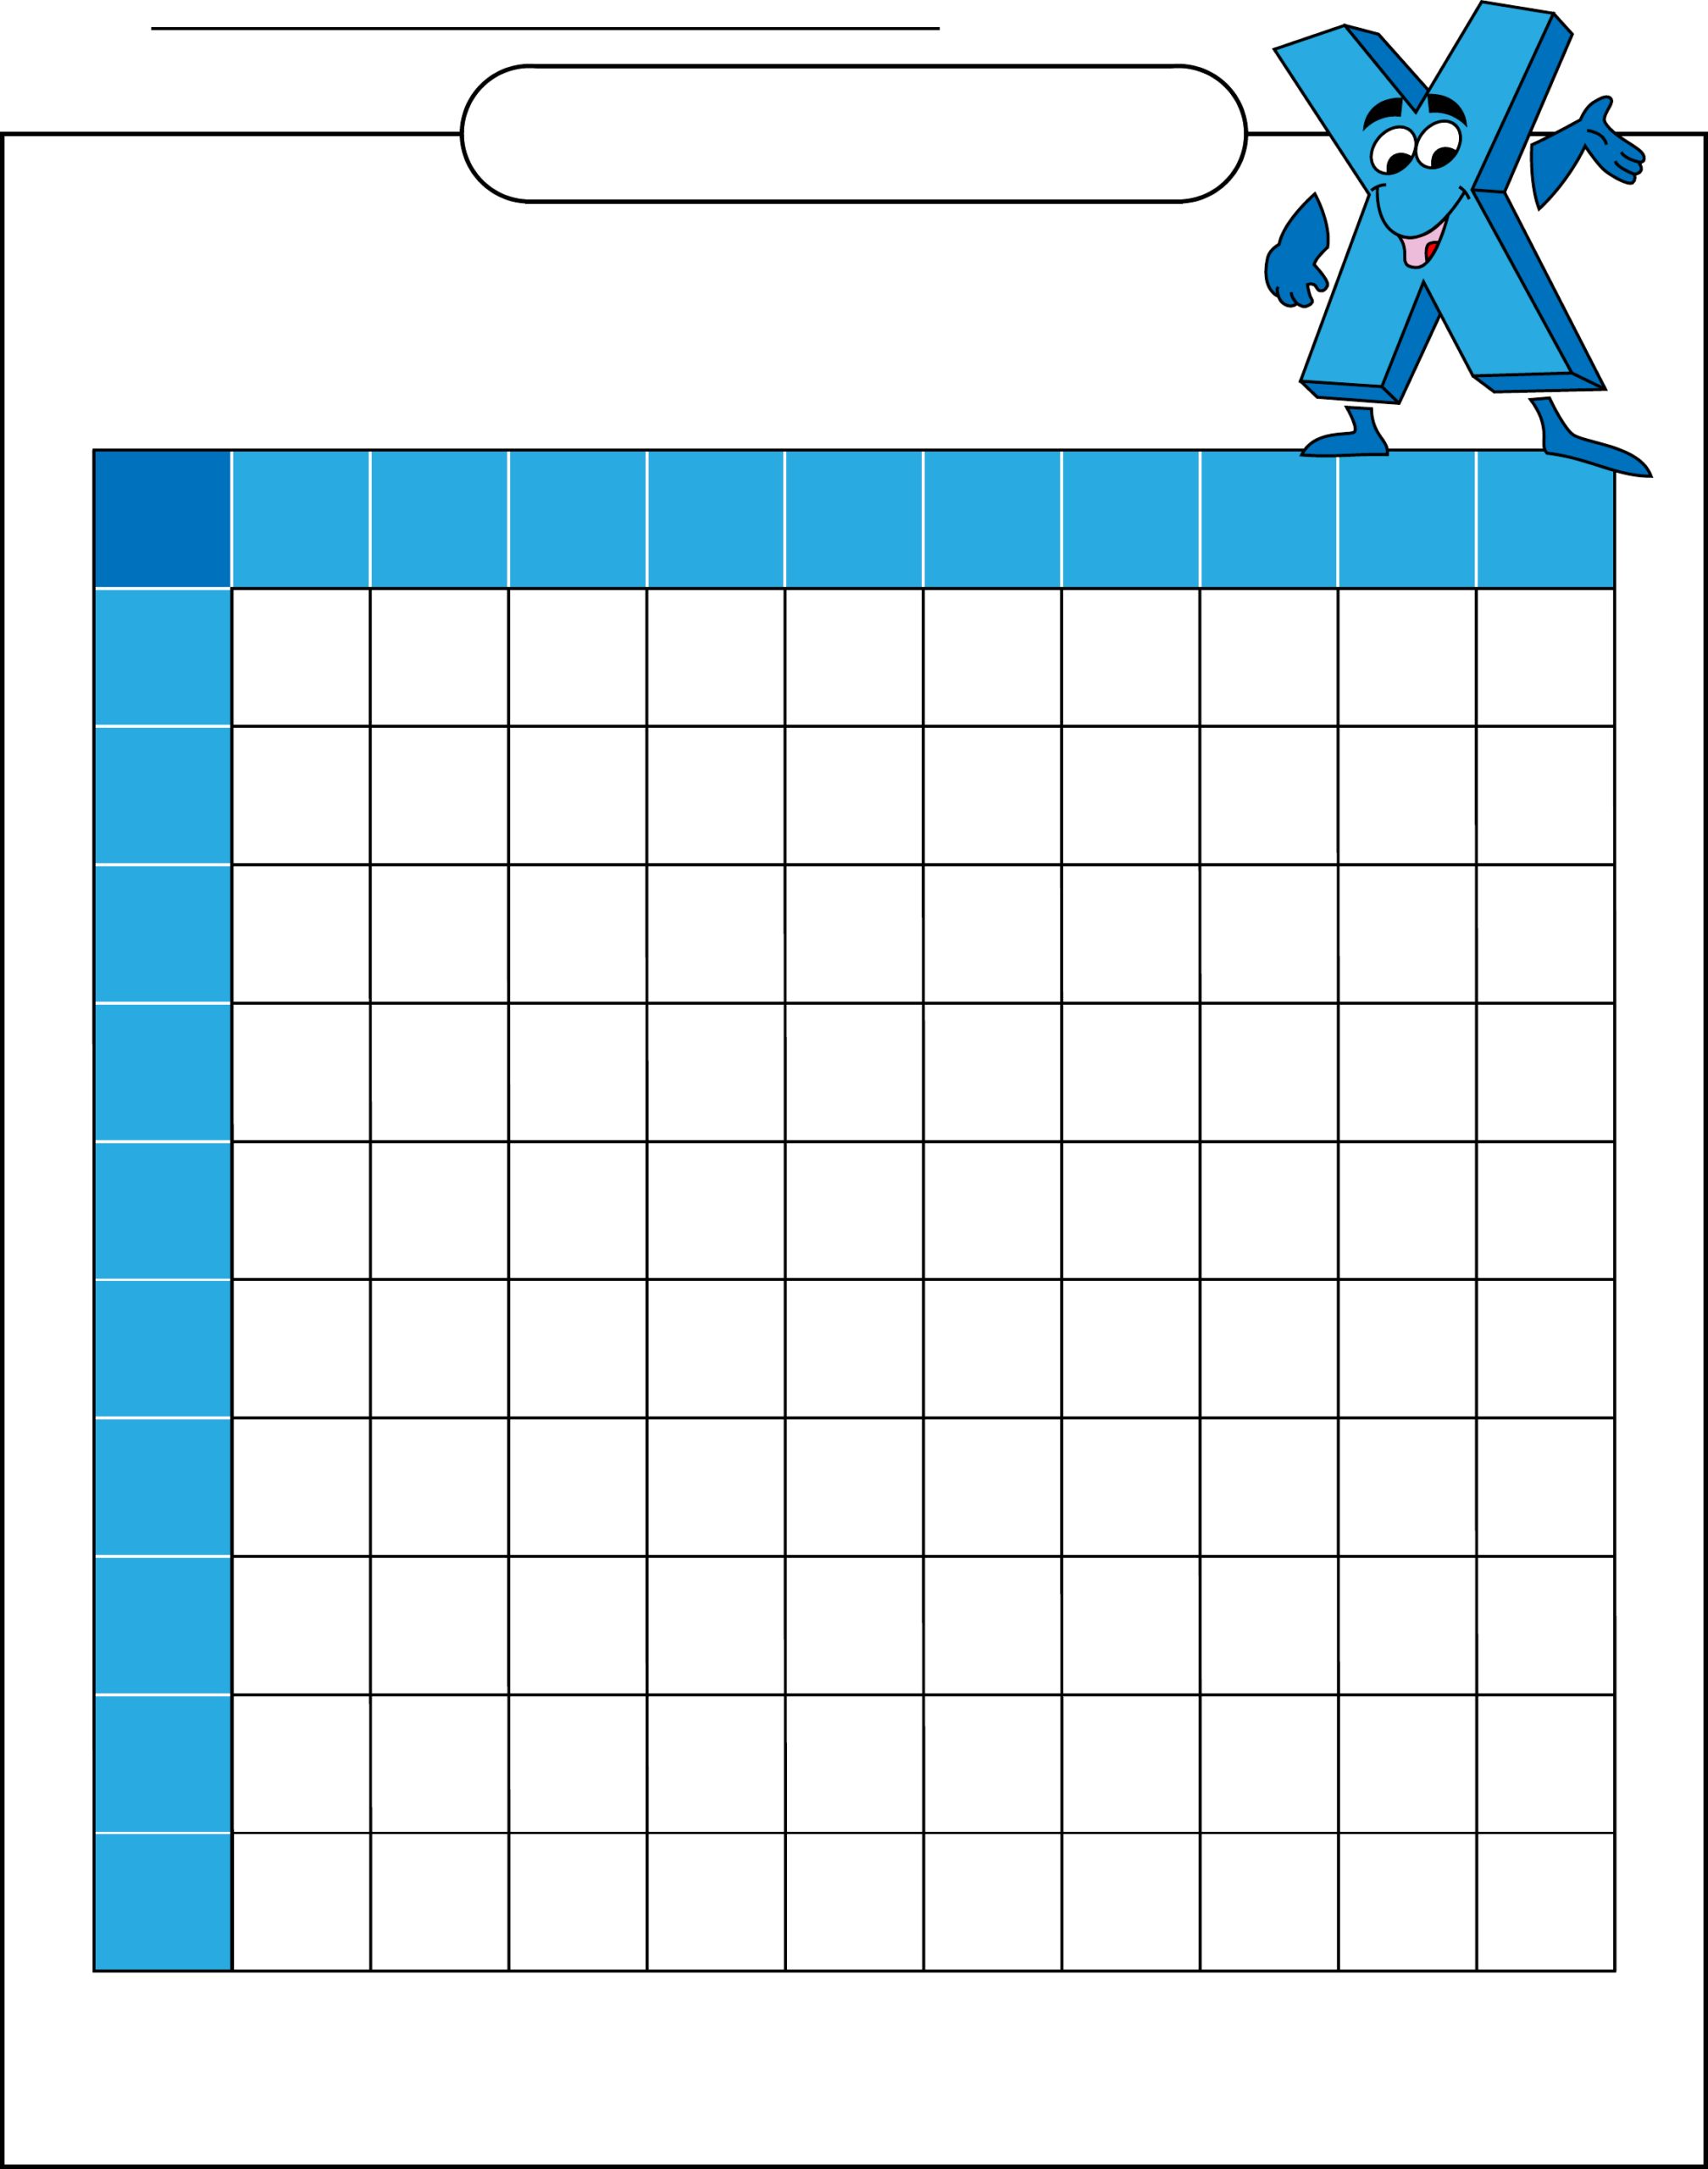 Blank Multiplication Table Free Download for Printable Blank Multiplication Table